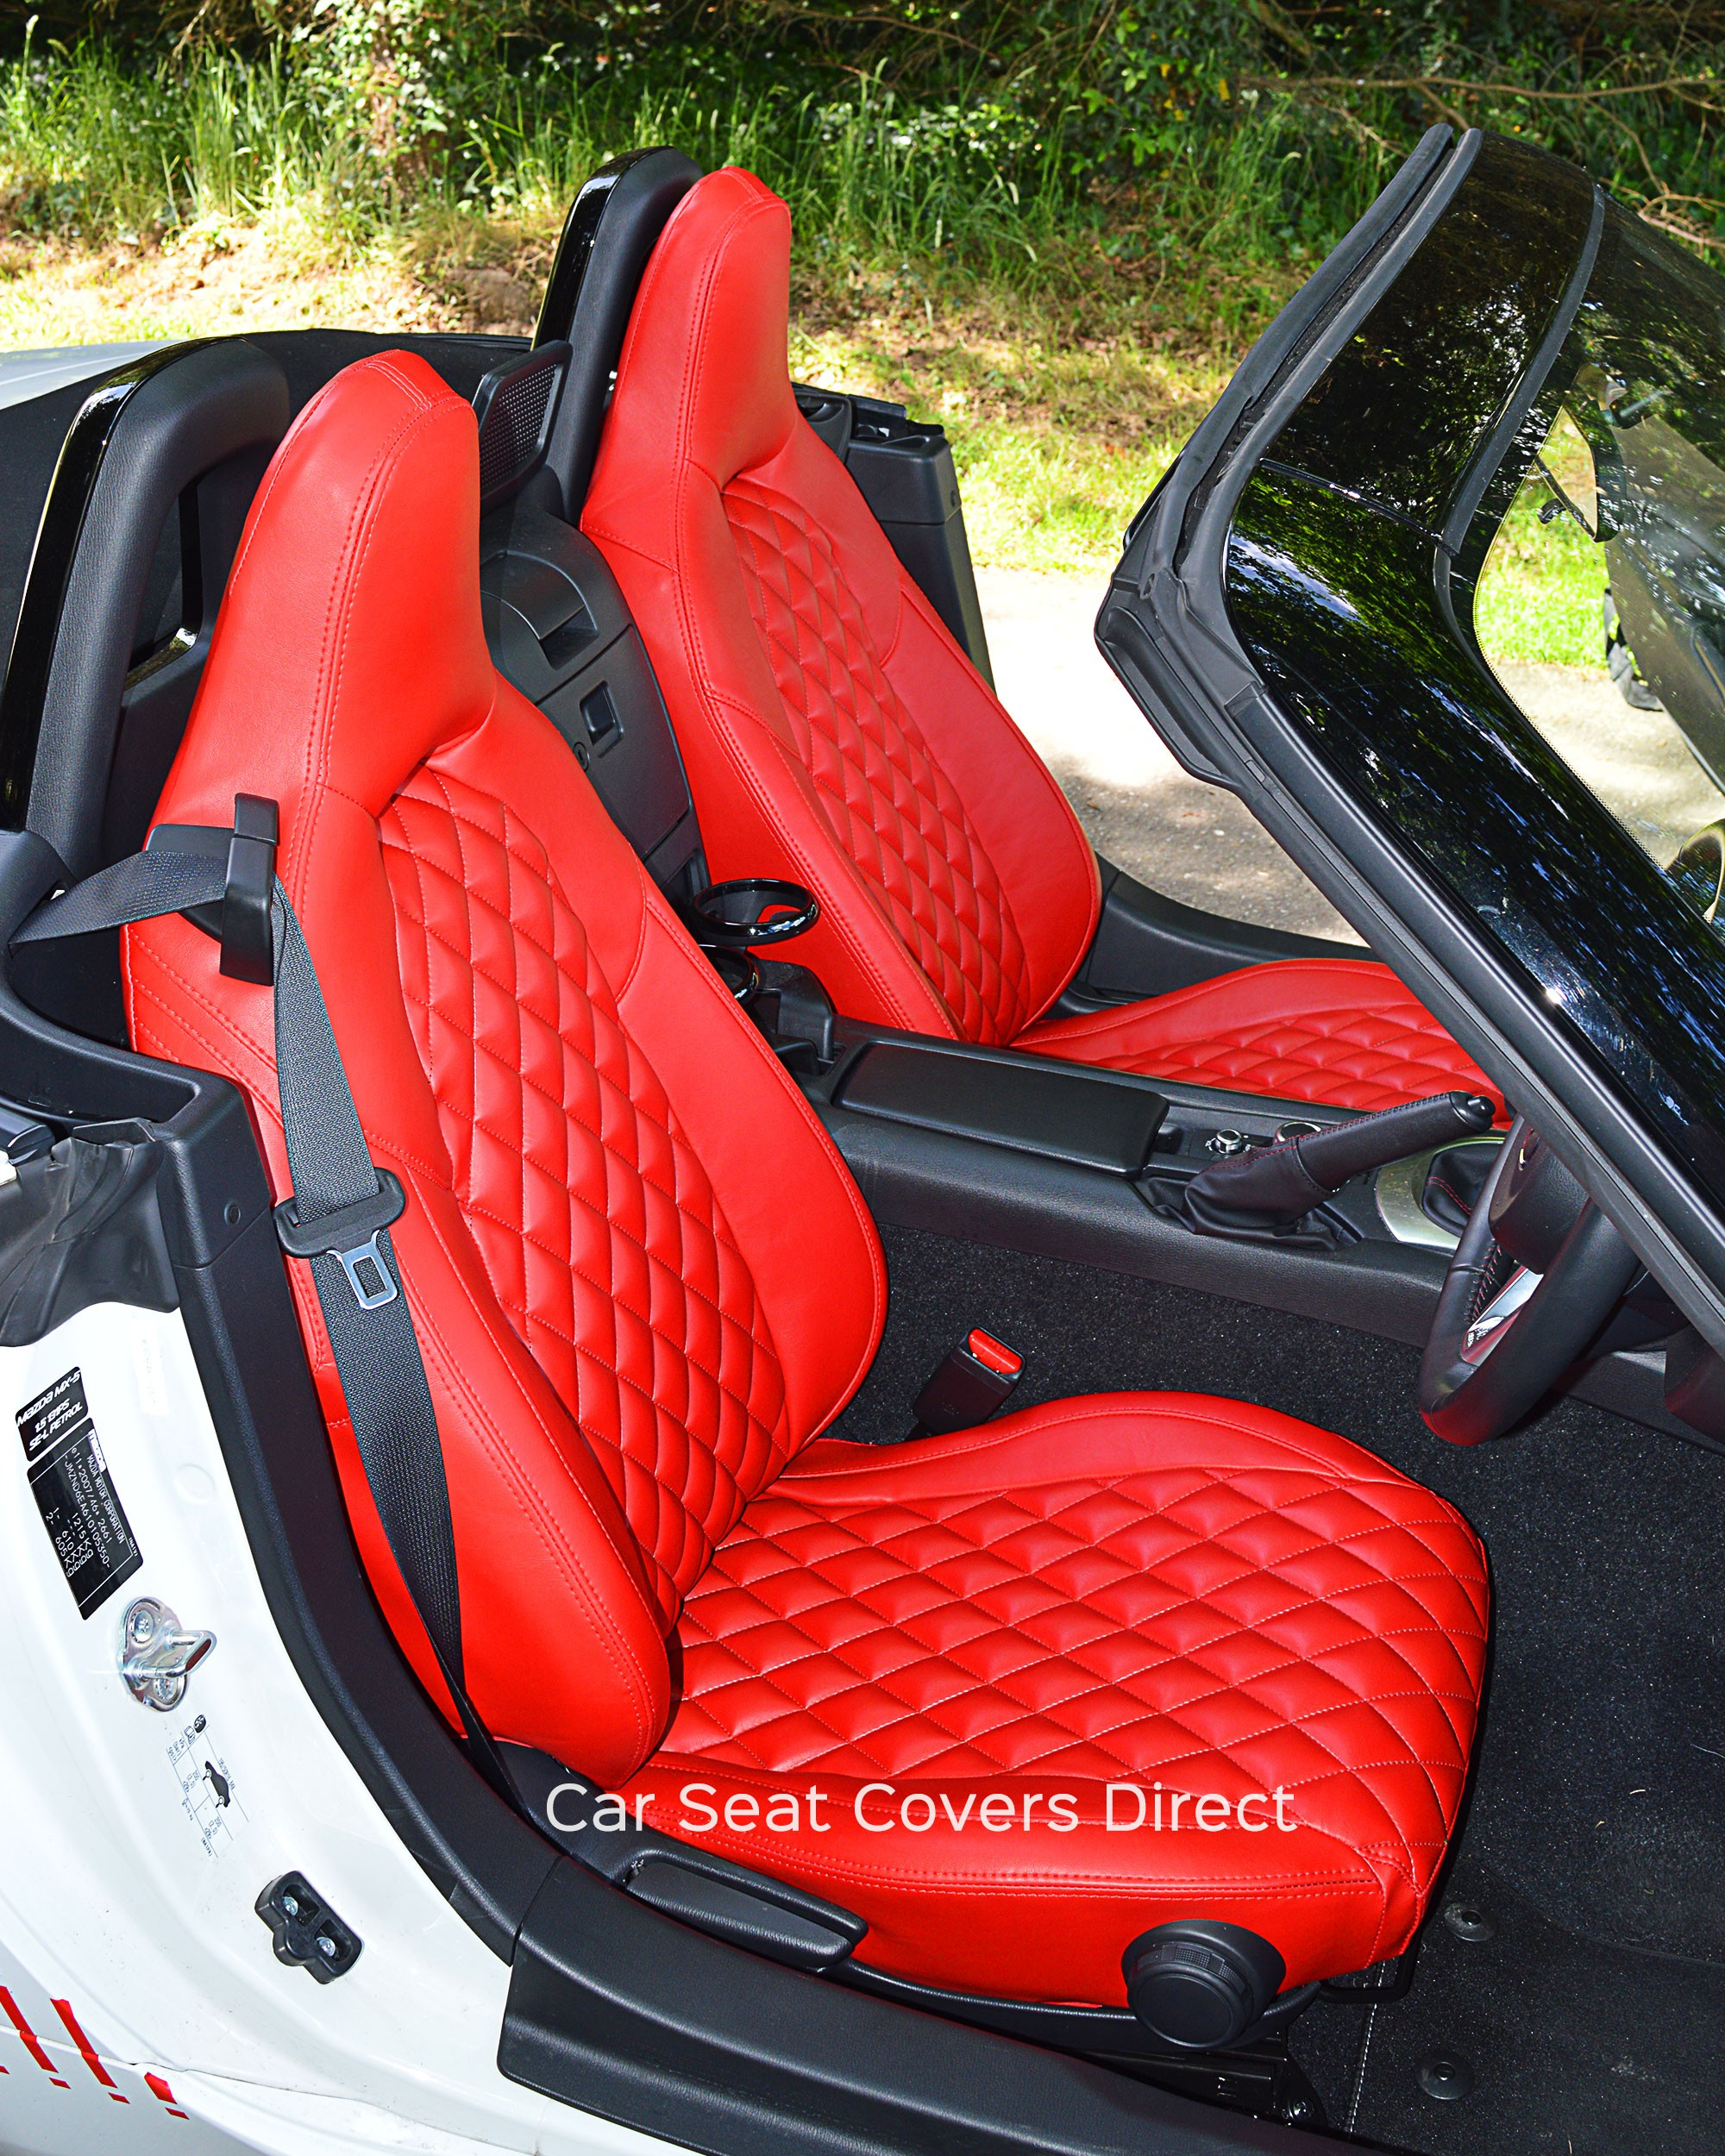 mazda mx5 tailored seat covers 4th generation 2015 present car seat covers direct tailored. Black Bedroom Furniture Sets. Home Design Ideas